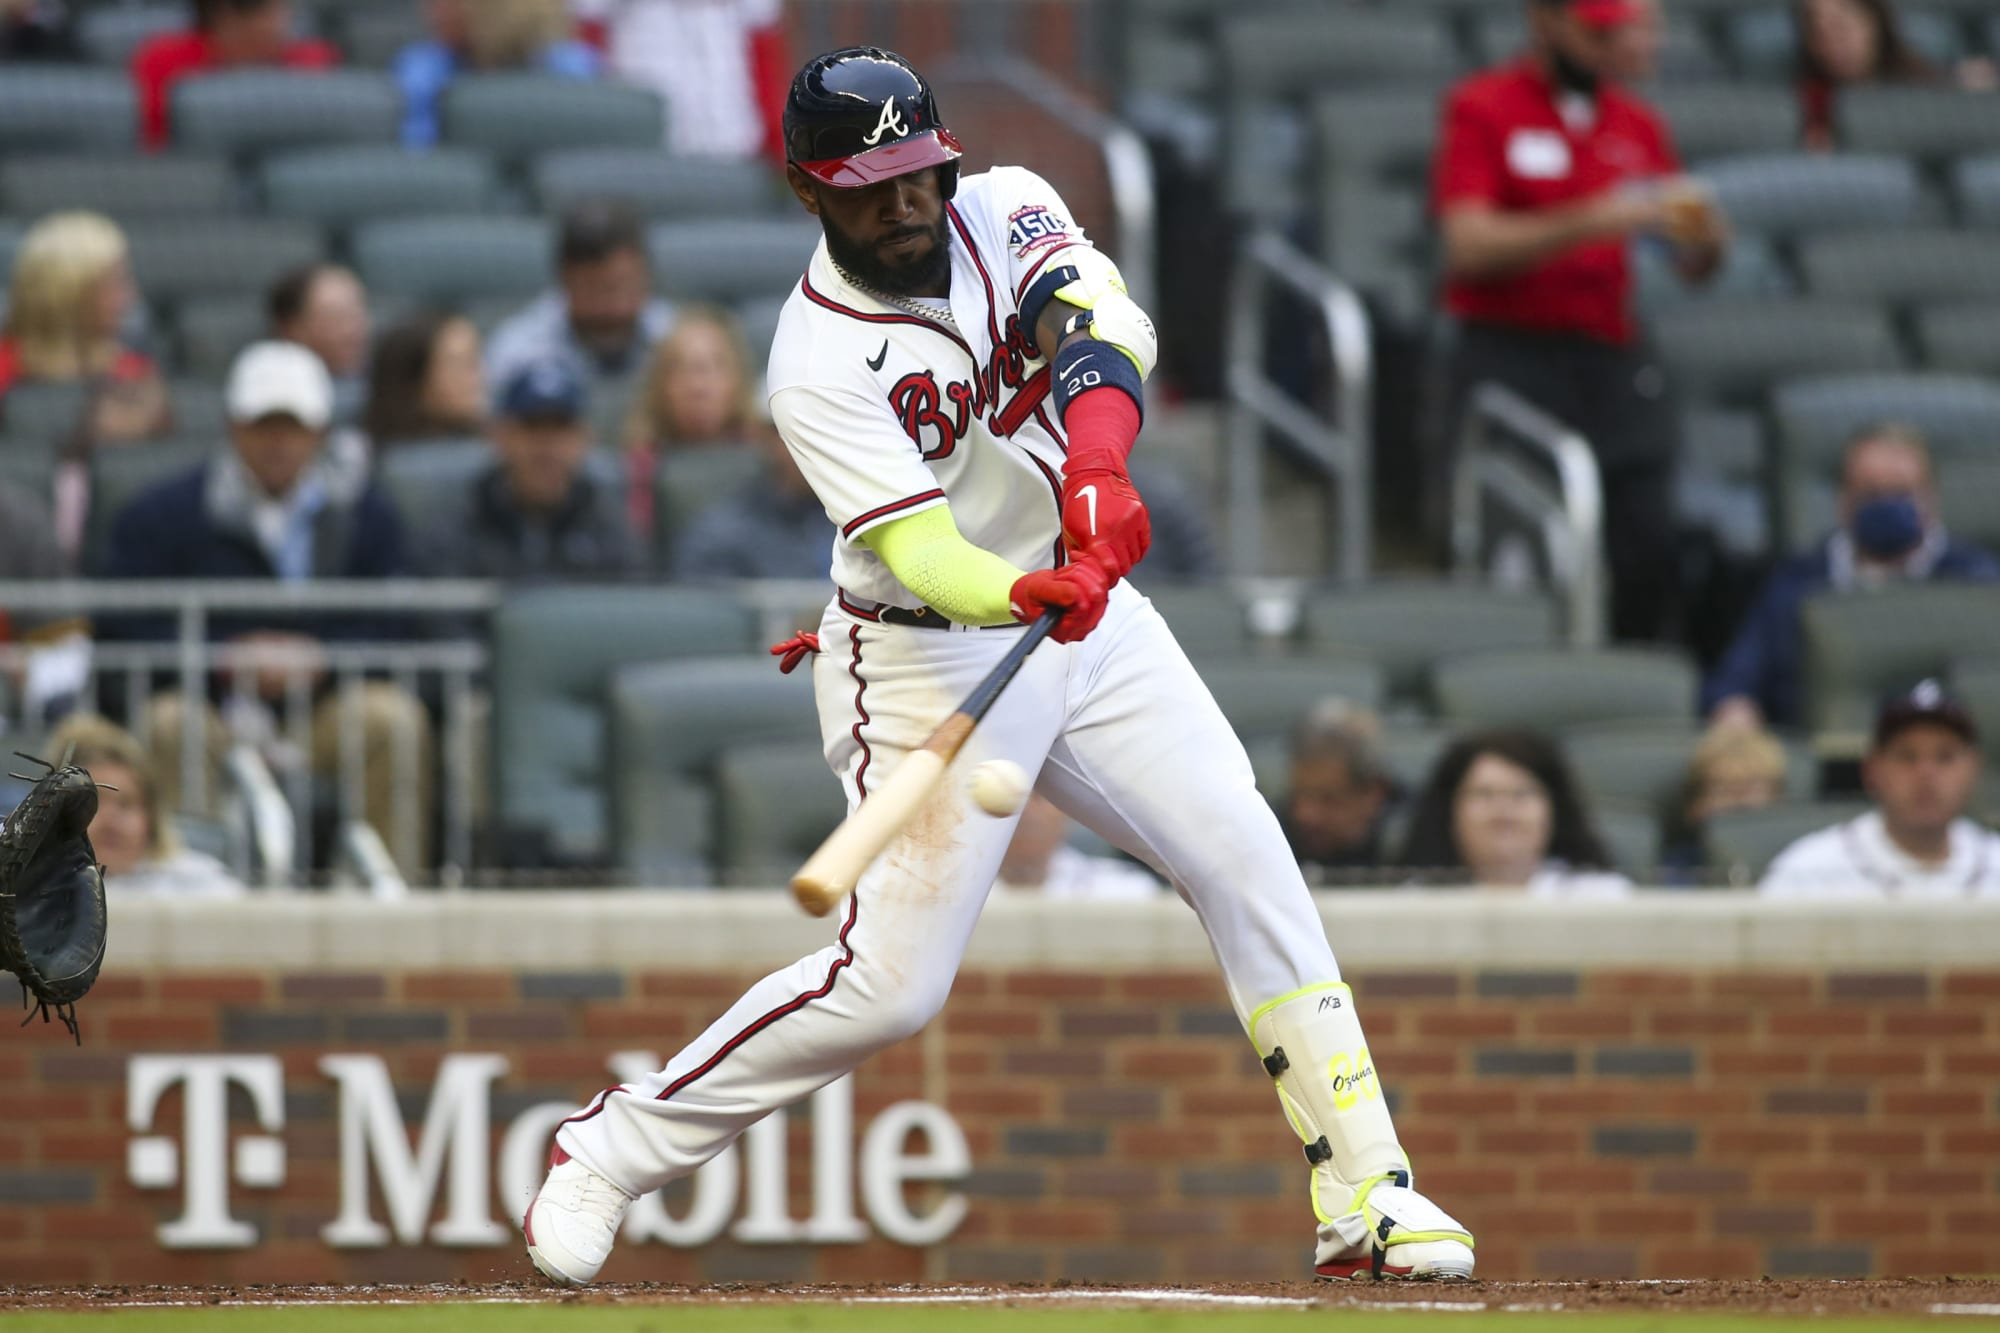 Marcell Ozuna replacements Braves can target via trade or free agency